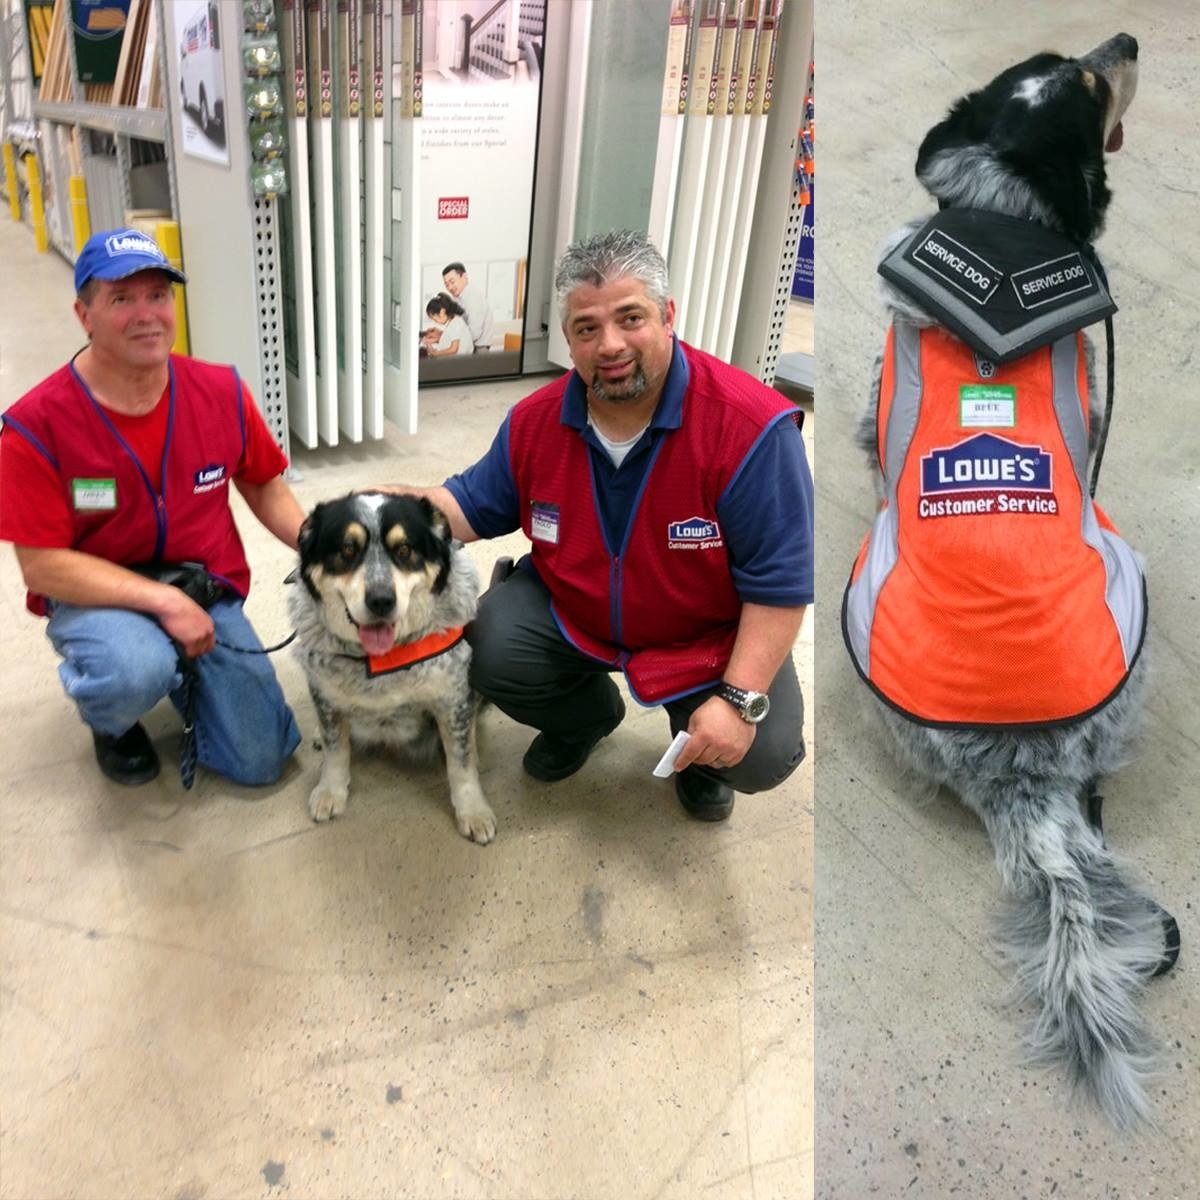 This Hardware Store Hired An Unemployed Man And His Support Dog